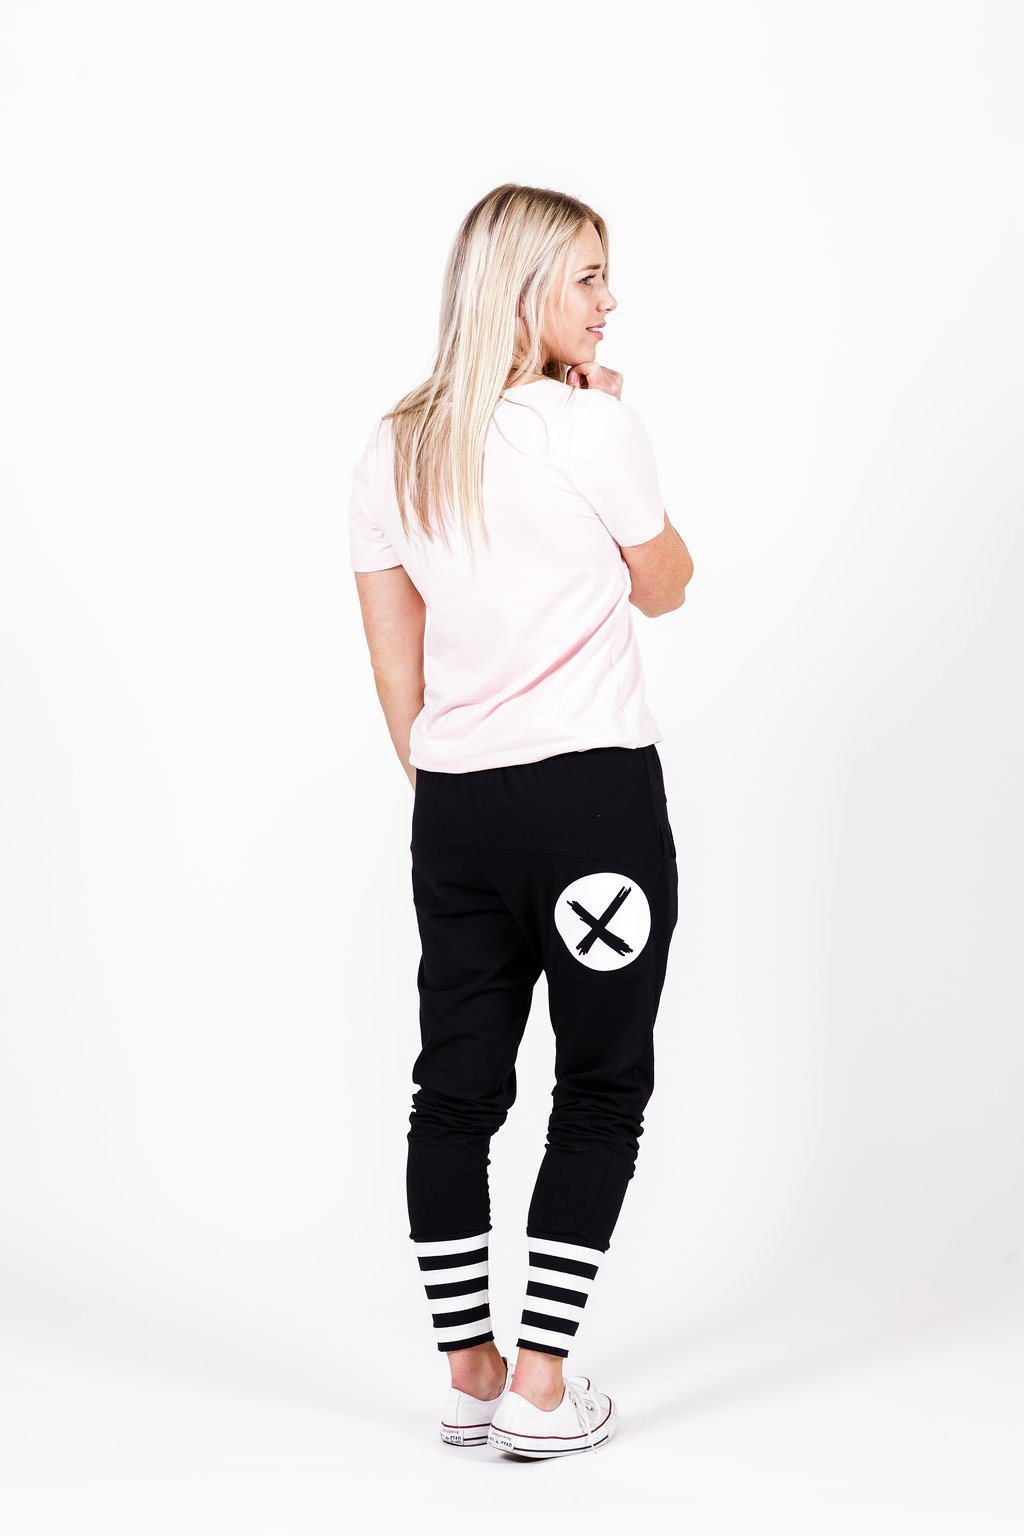 Home-Lee: Apartment Pants -Black With White X Spot Print And Stripe Cuffs - 16 image